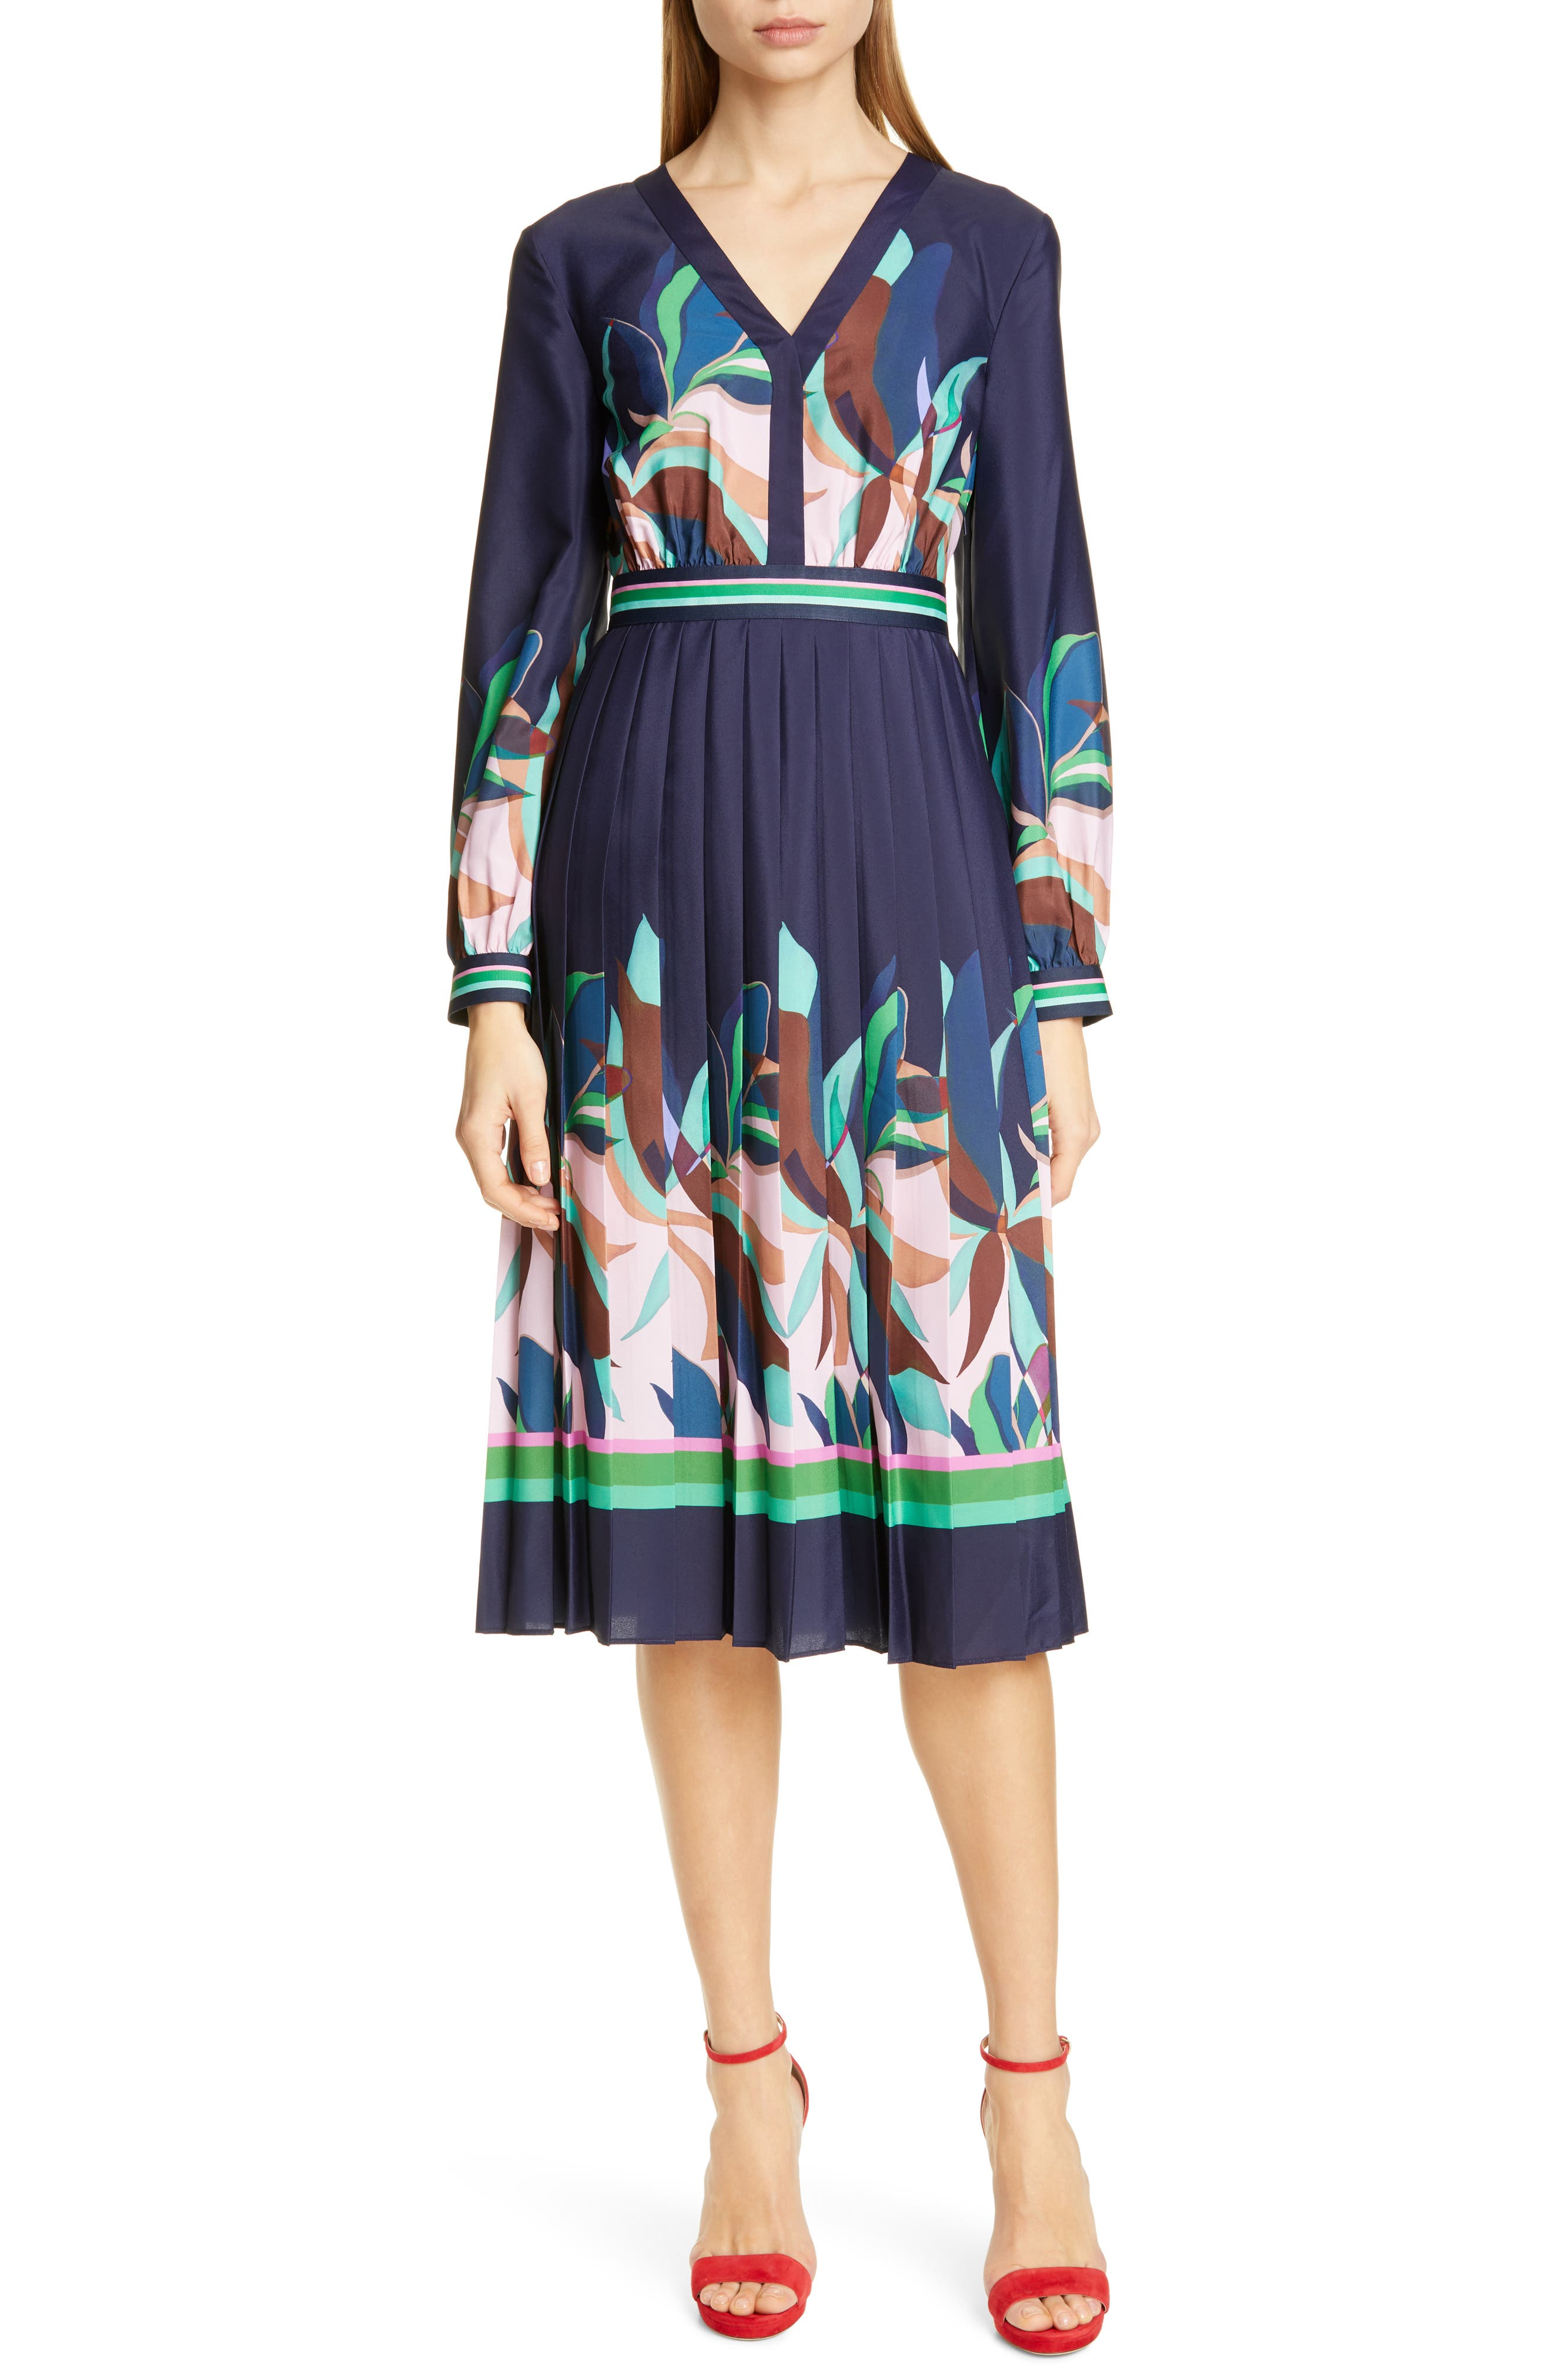 TED BAKER LONDON Leonore Supernatural Fit & Flare Dress, Main, color, NAVY